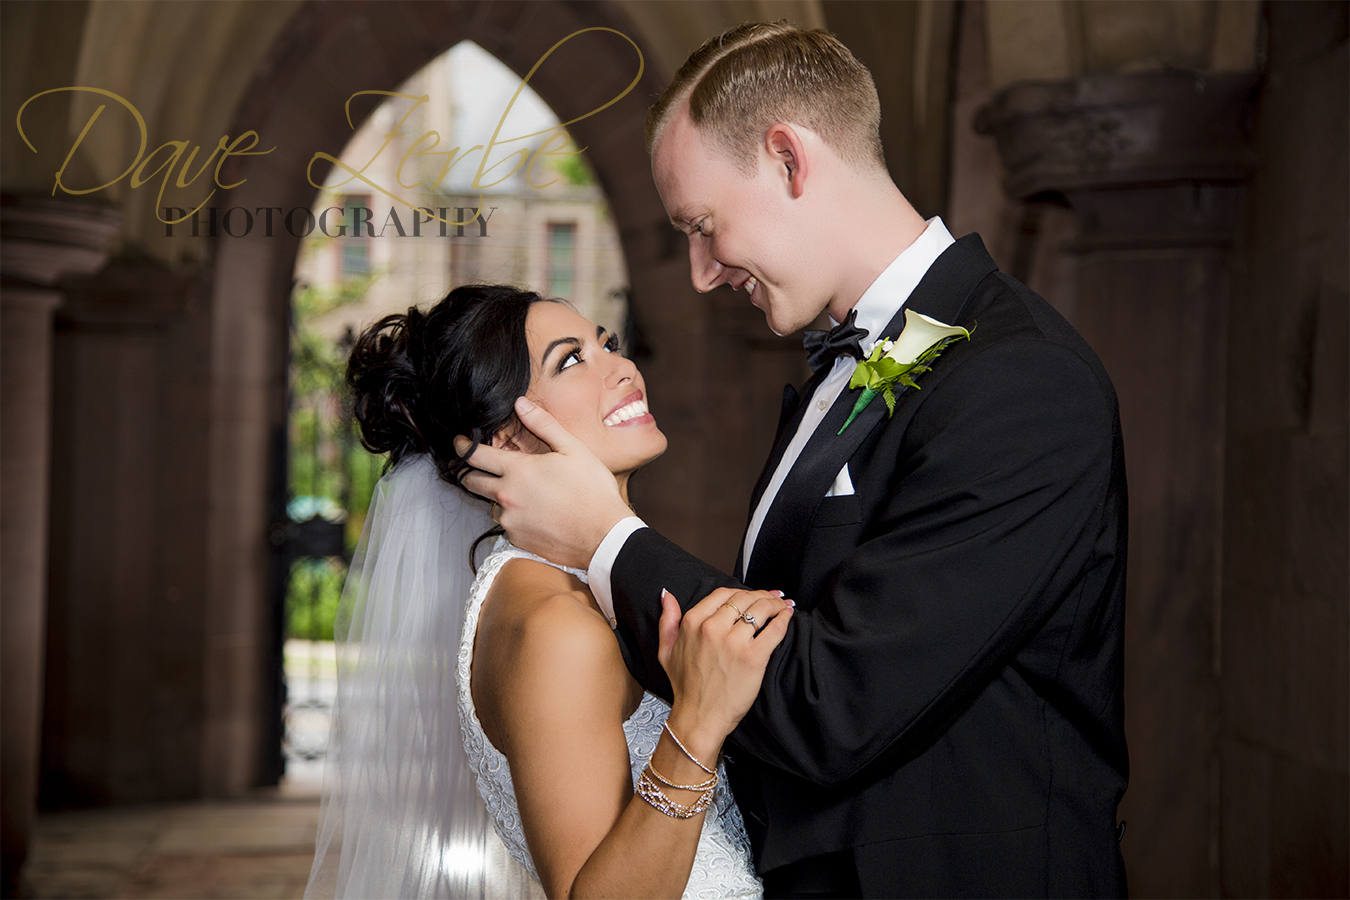 The Wedding of Ericka Diehl & Derek Bendetti